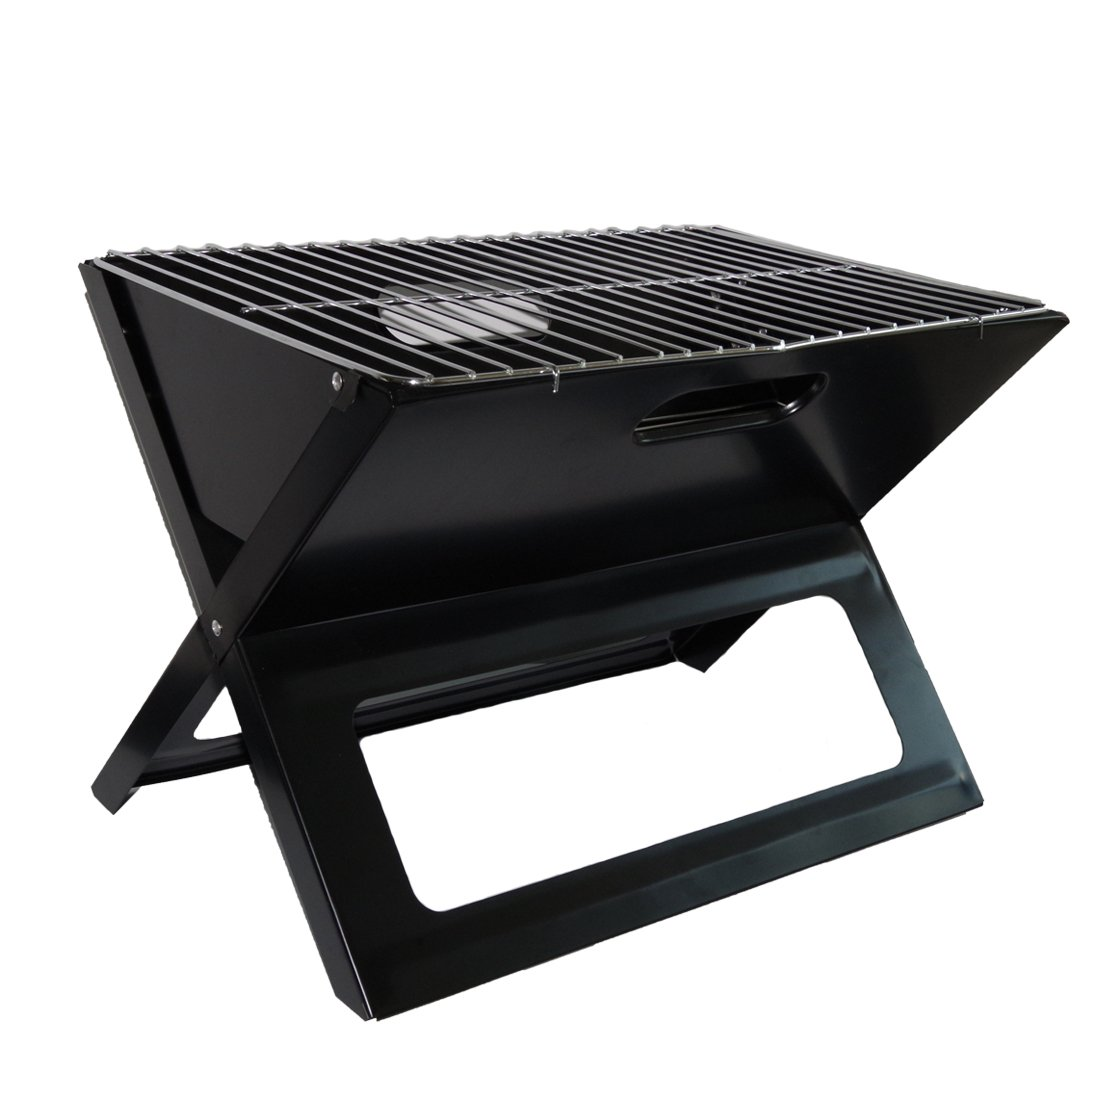 Bermu Foldable Notebook Charcoal Grill X-Type for Outdoors with 1 Mesh Clip and Handbag Ltd